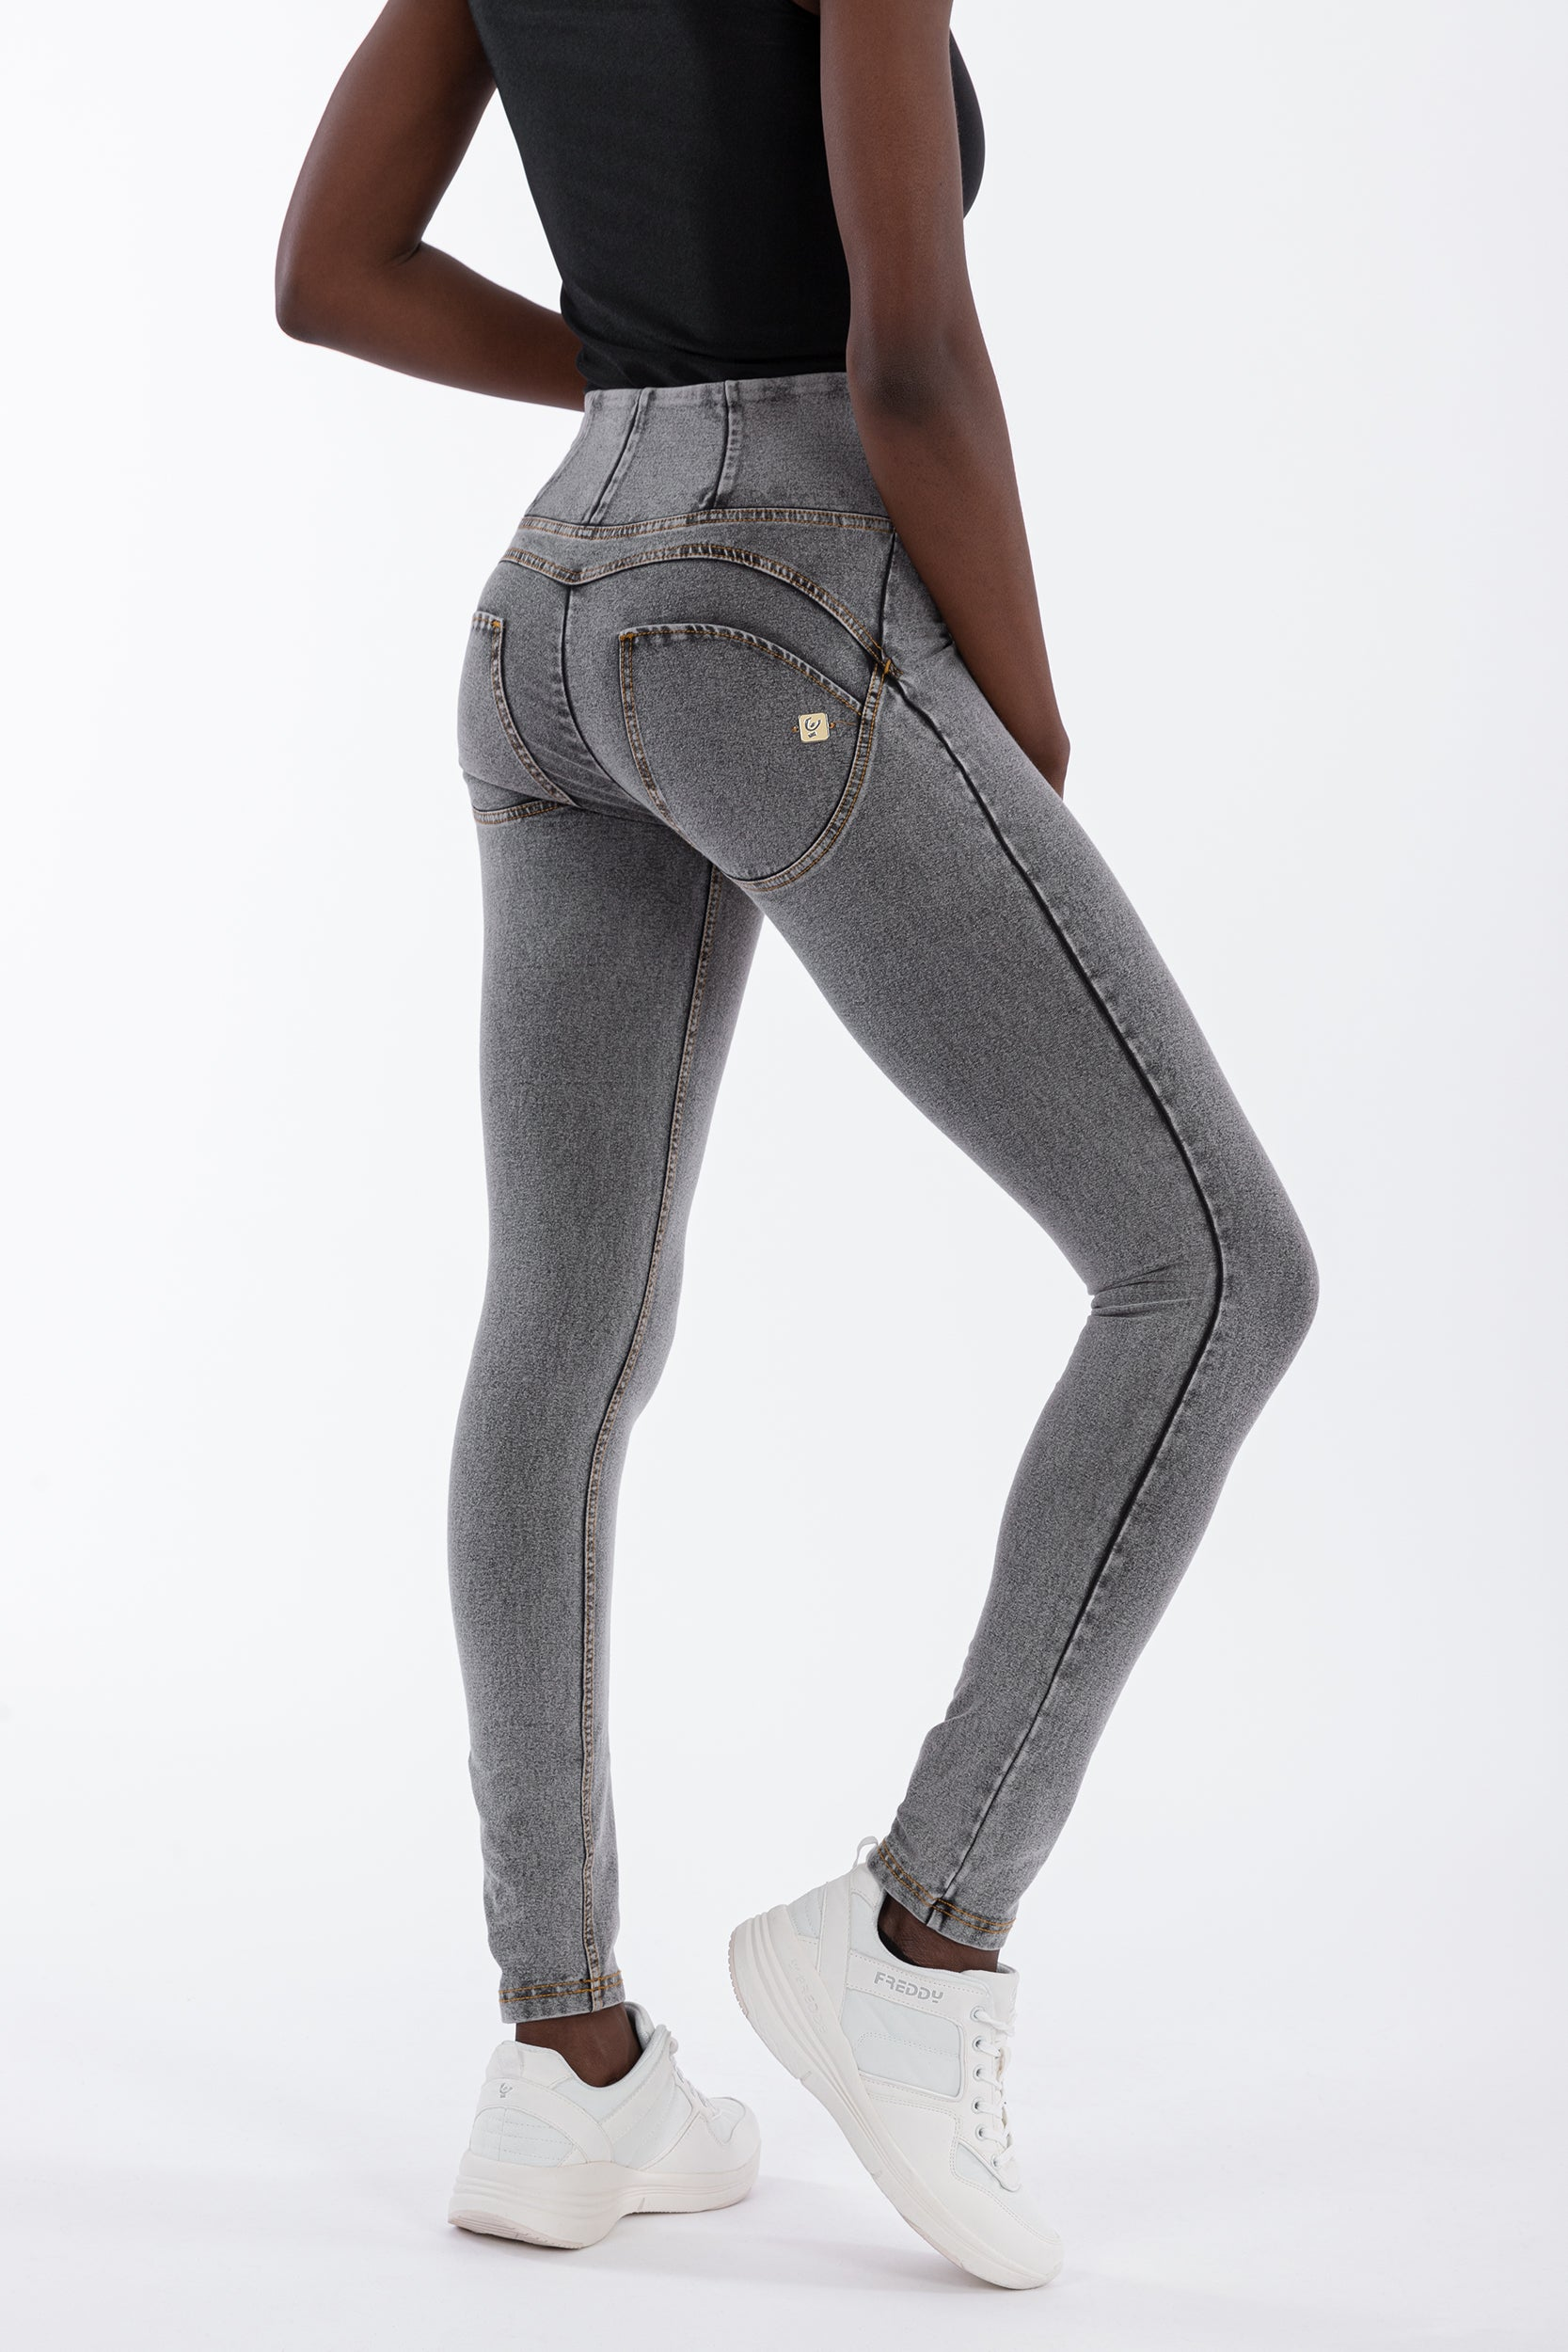 GREY DENIM HIGH WAIST SELF TONE ZIP